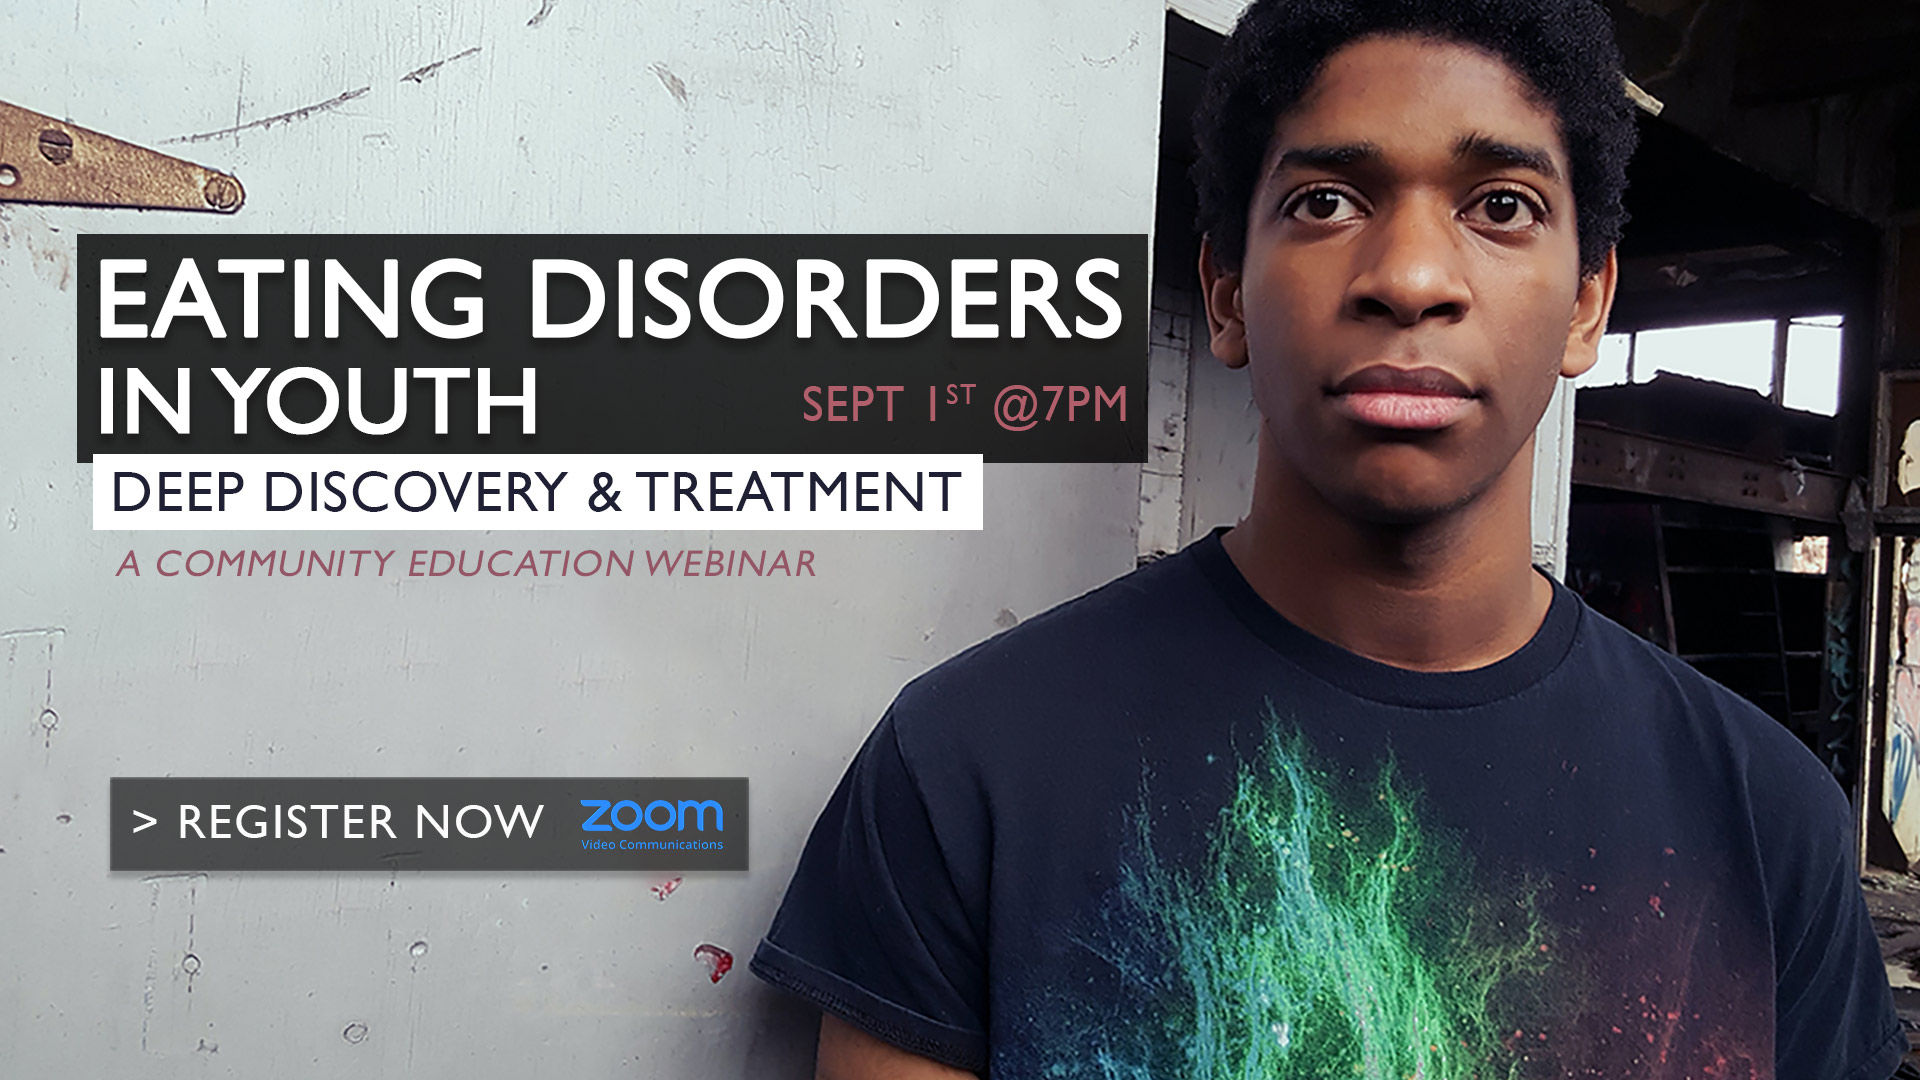 eating disorders in youth webinar